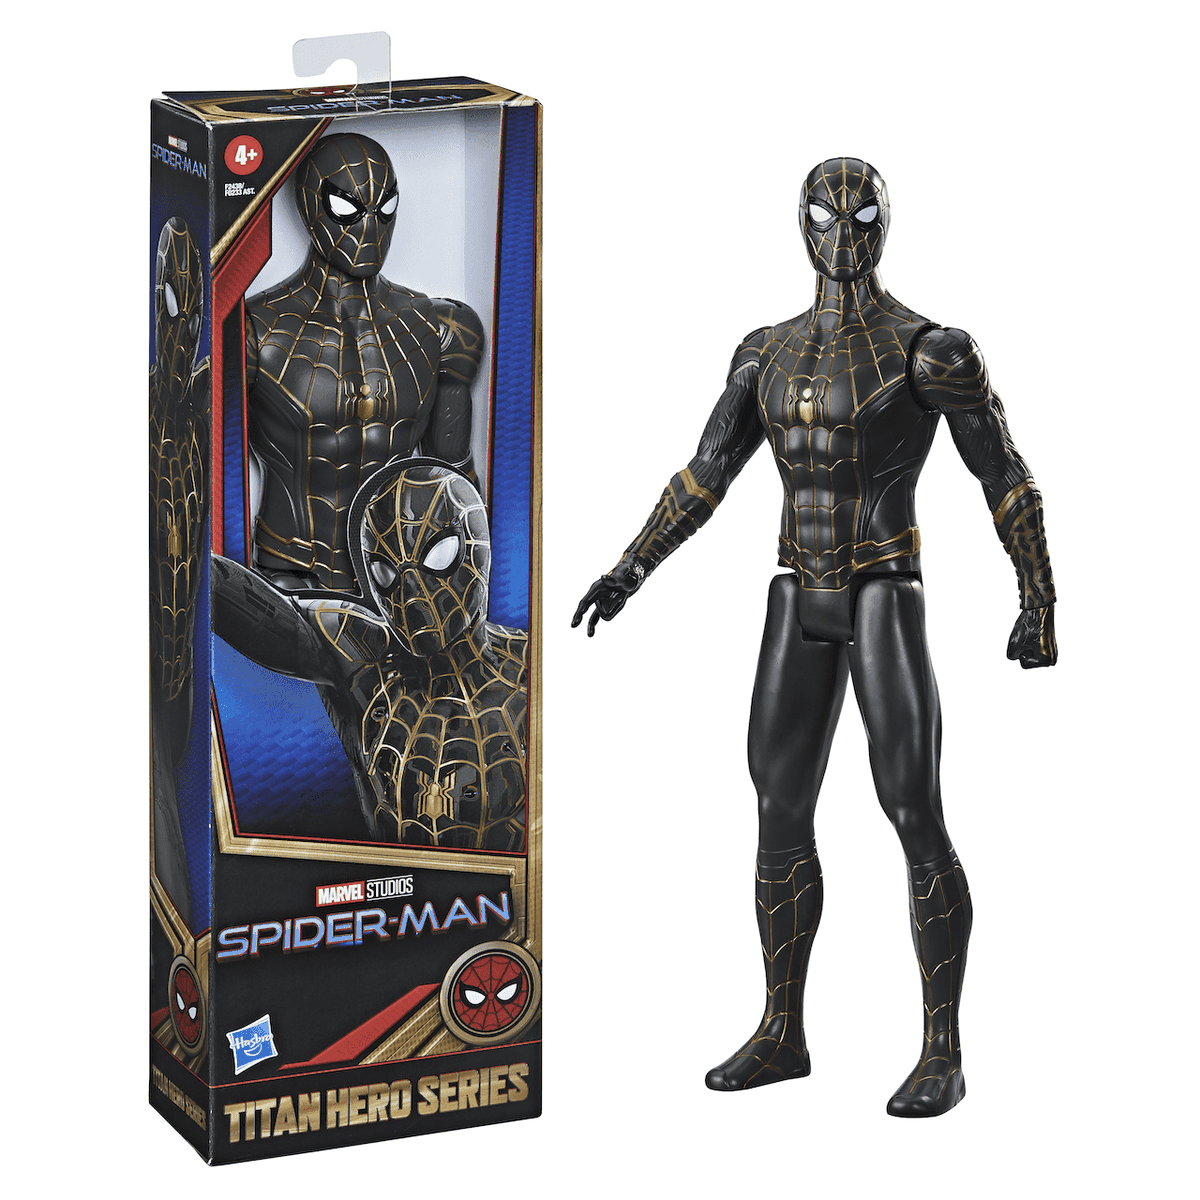 An action figure of Spider-Man from No Way Home